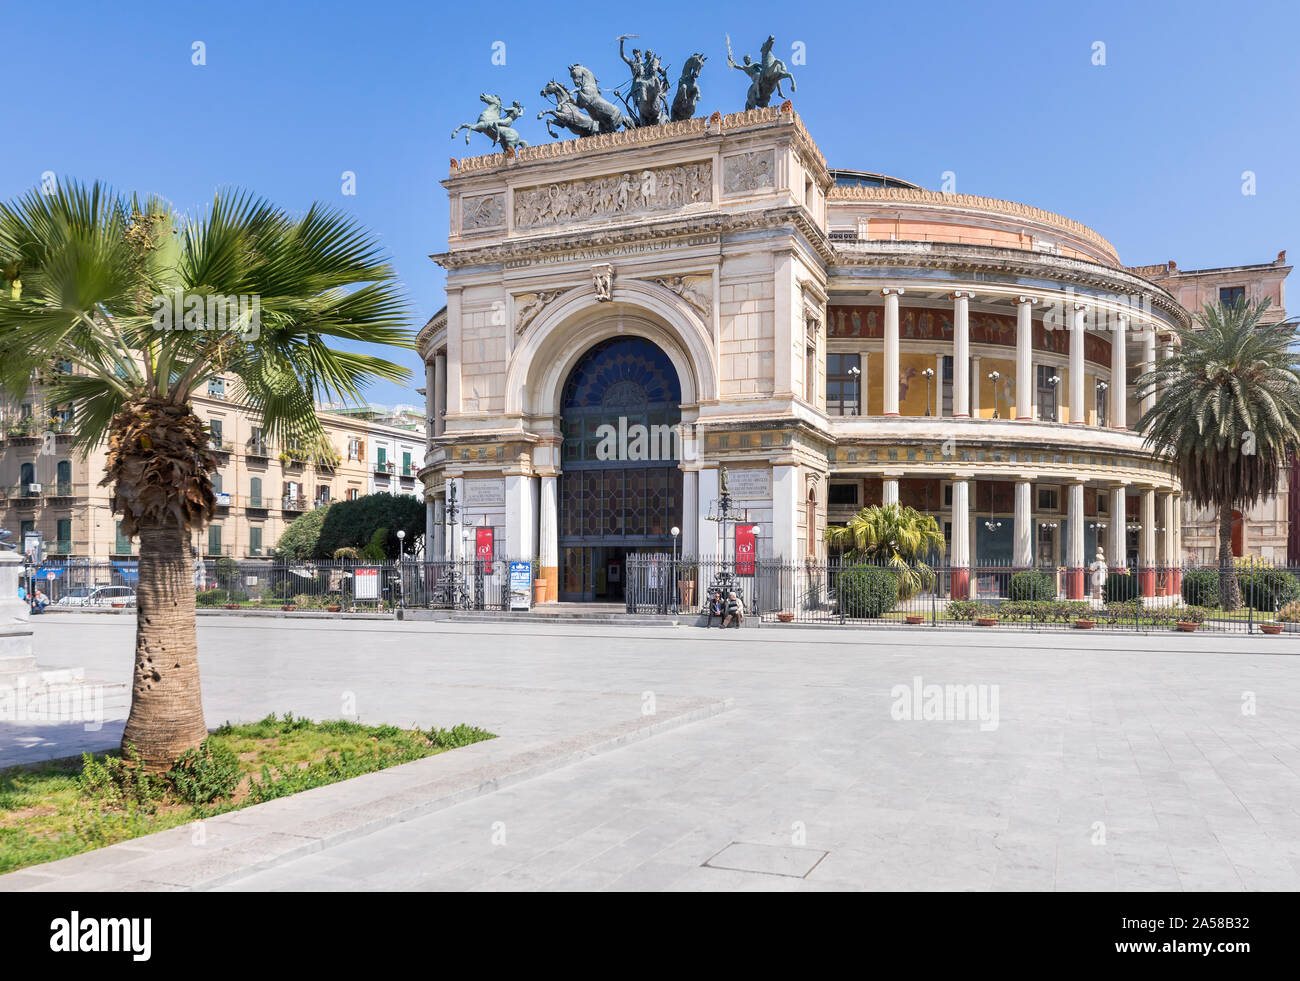 Palermo, Sicily - Marc 23, 2019: Teatro Politeama Palermo, Politeama Theatre front view from the side in daylight. Stock Photo